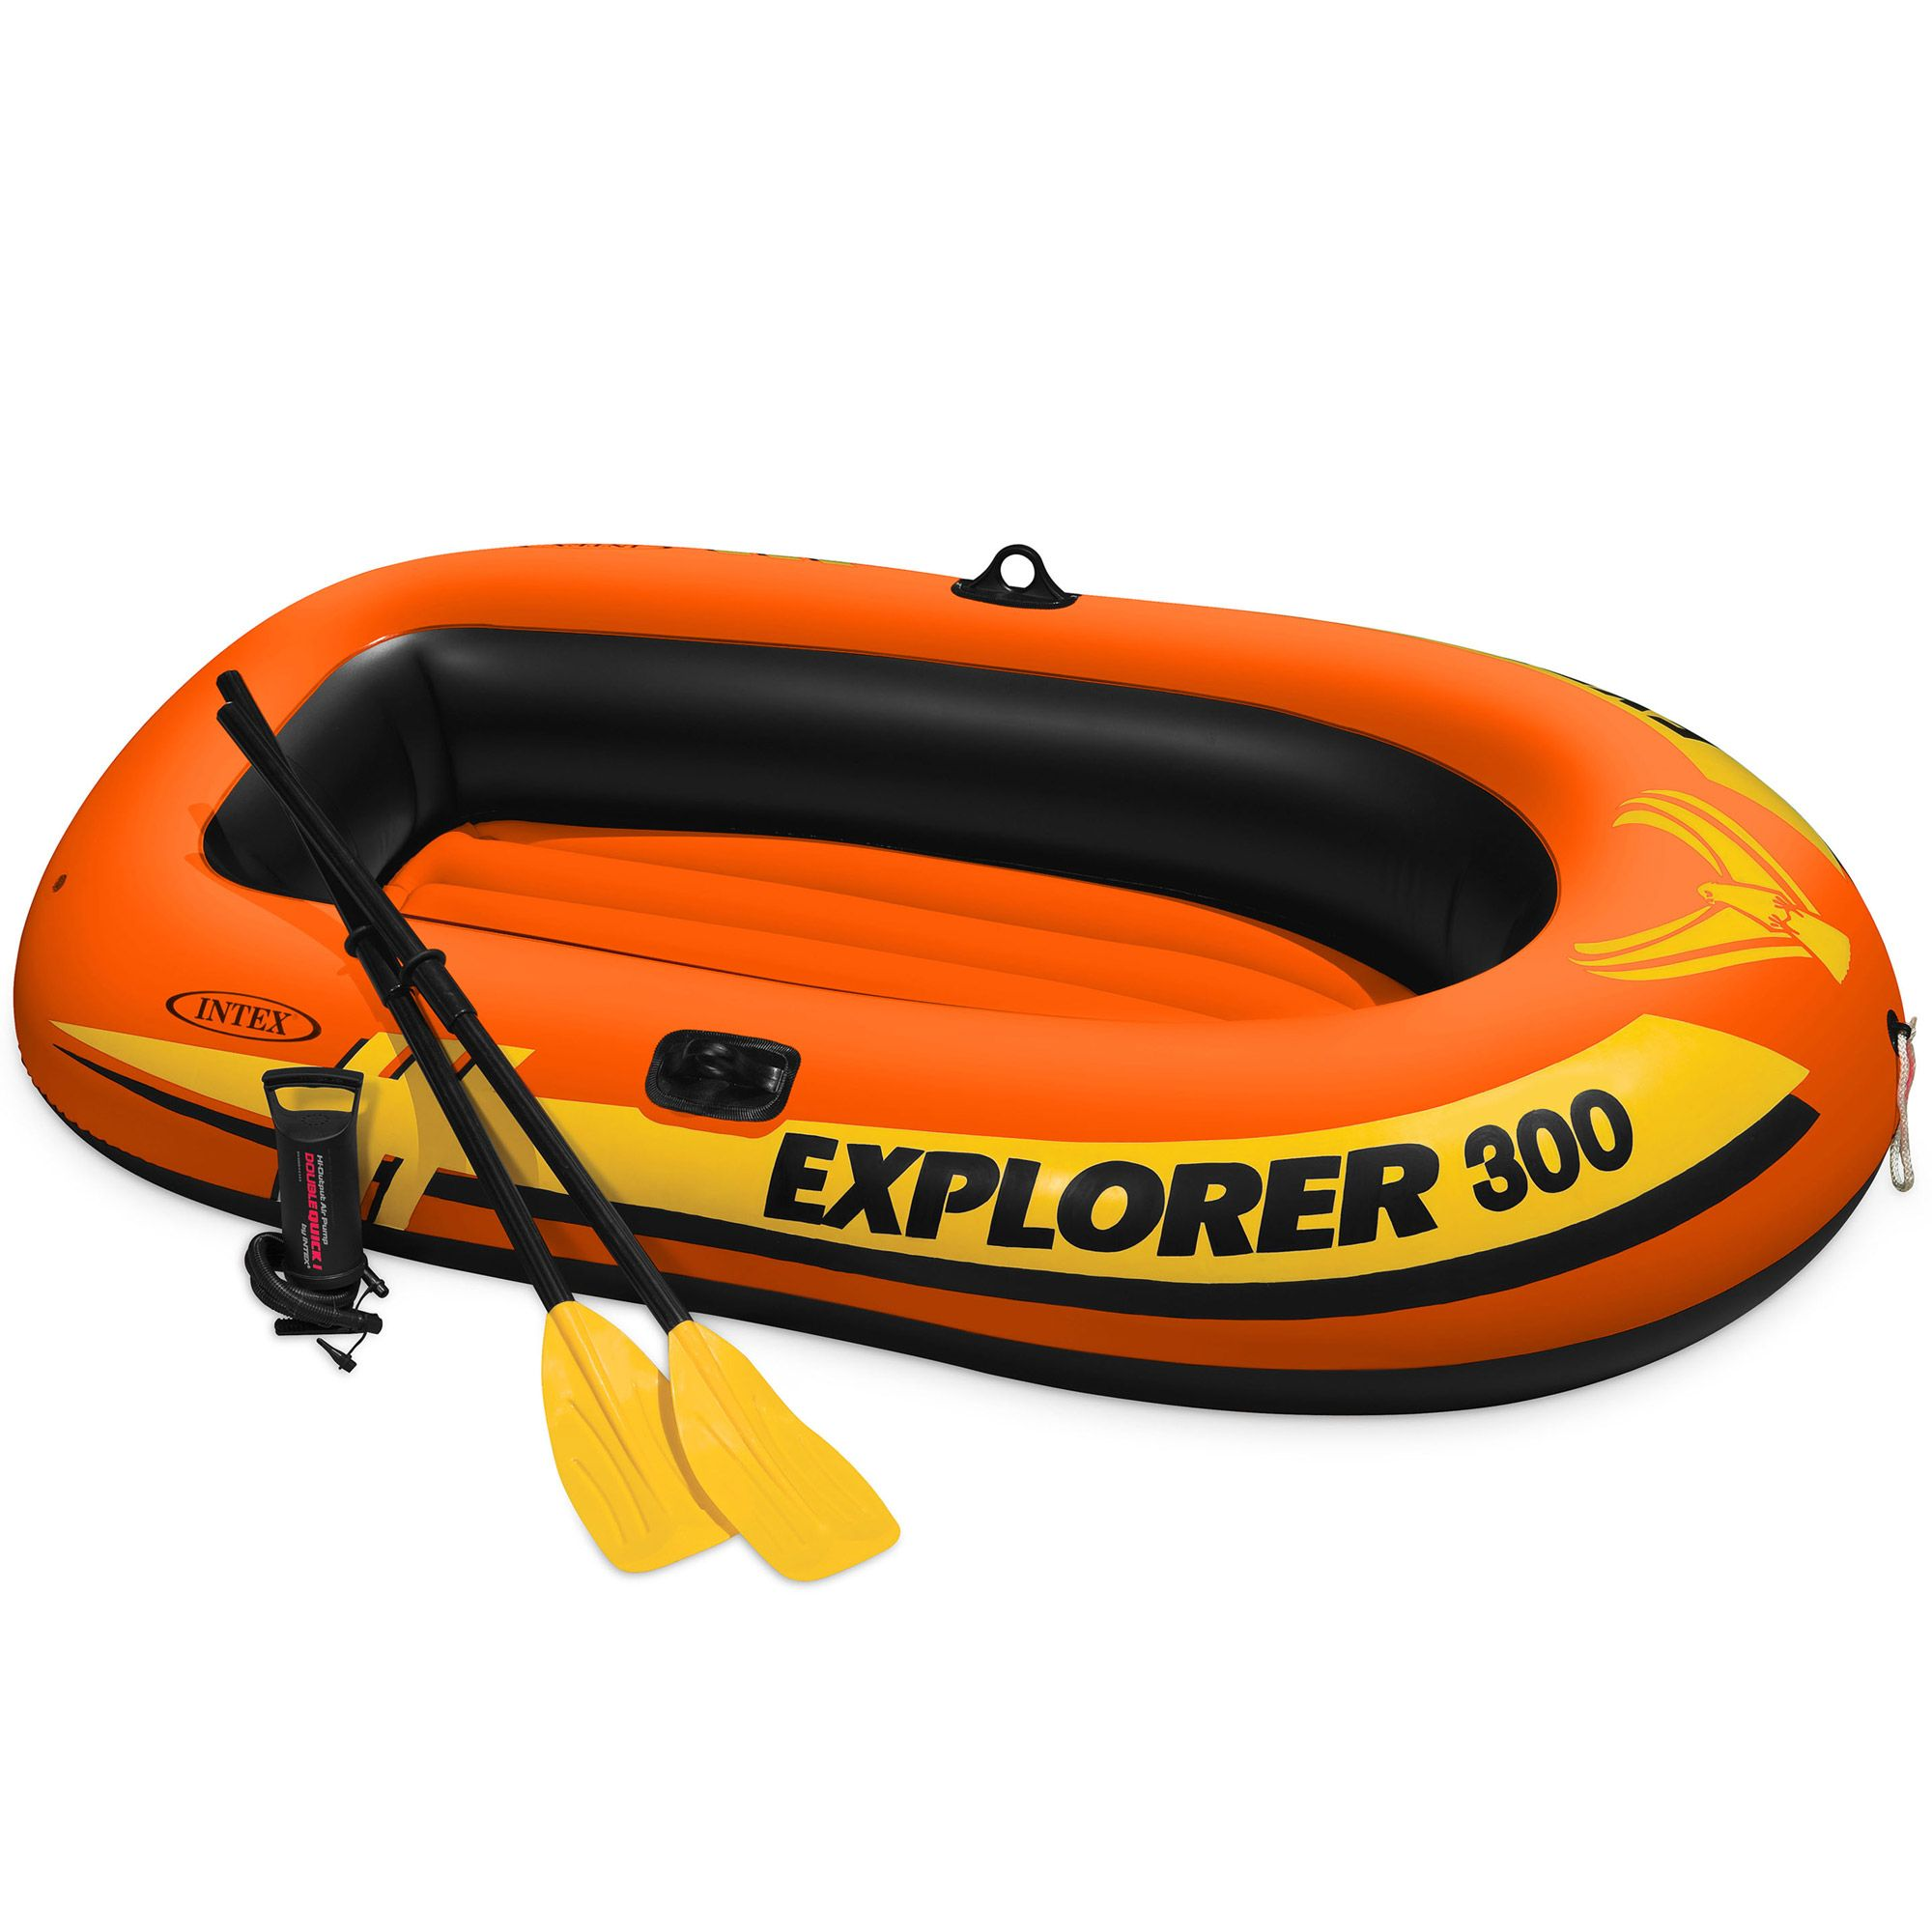 Intex Explorer 300 Compact Inflatable Fishing 3 Person Raft